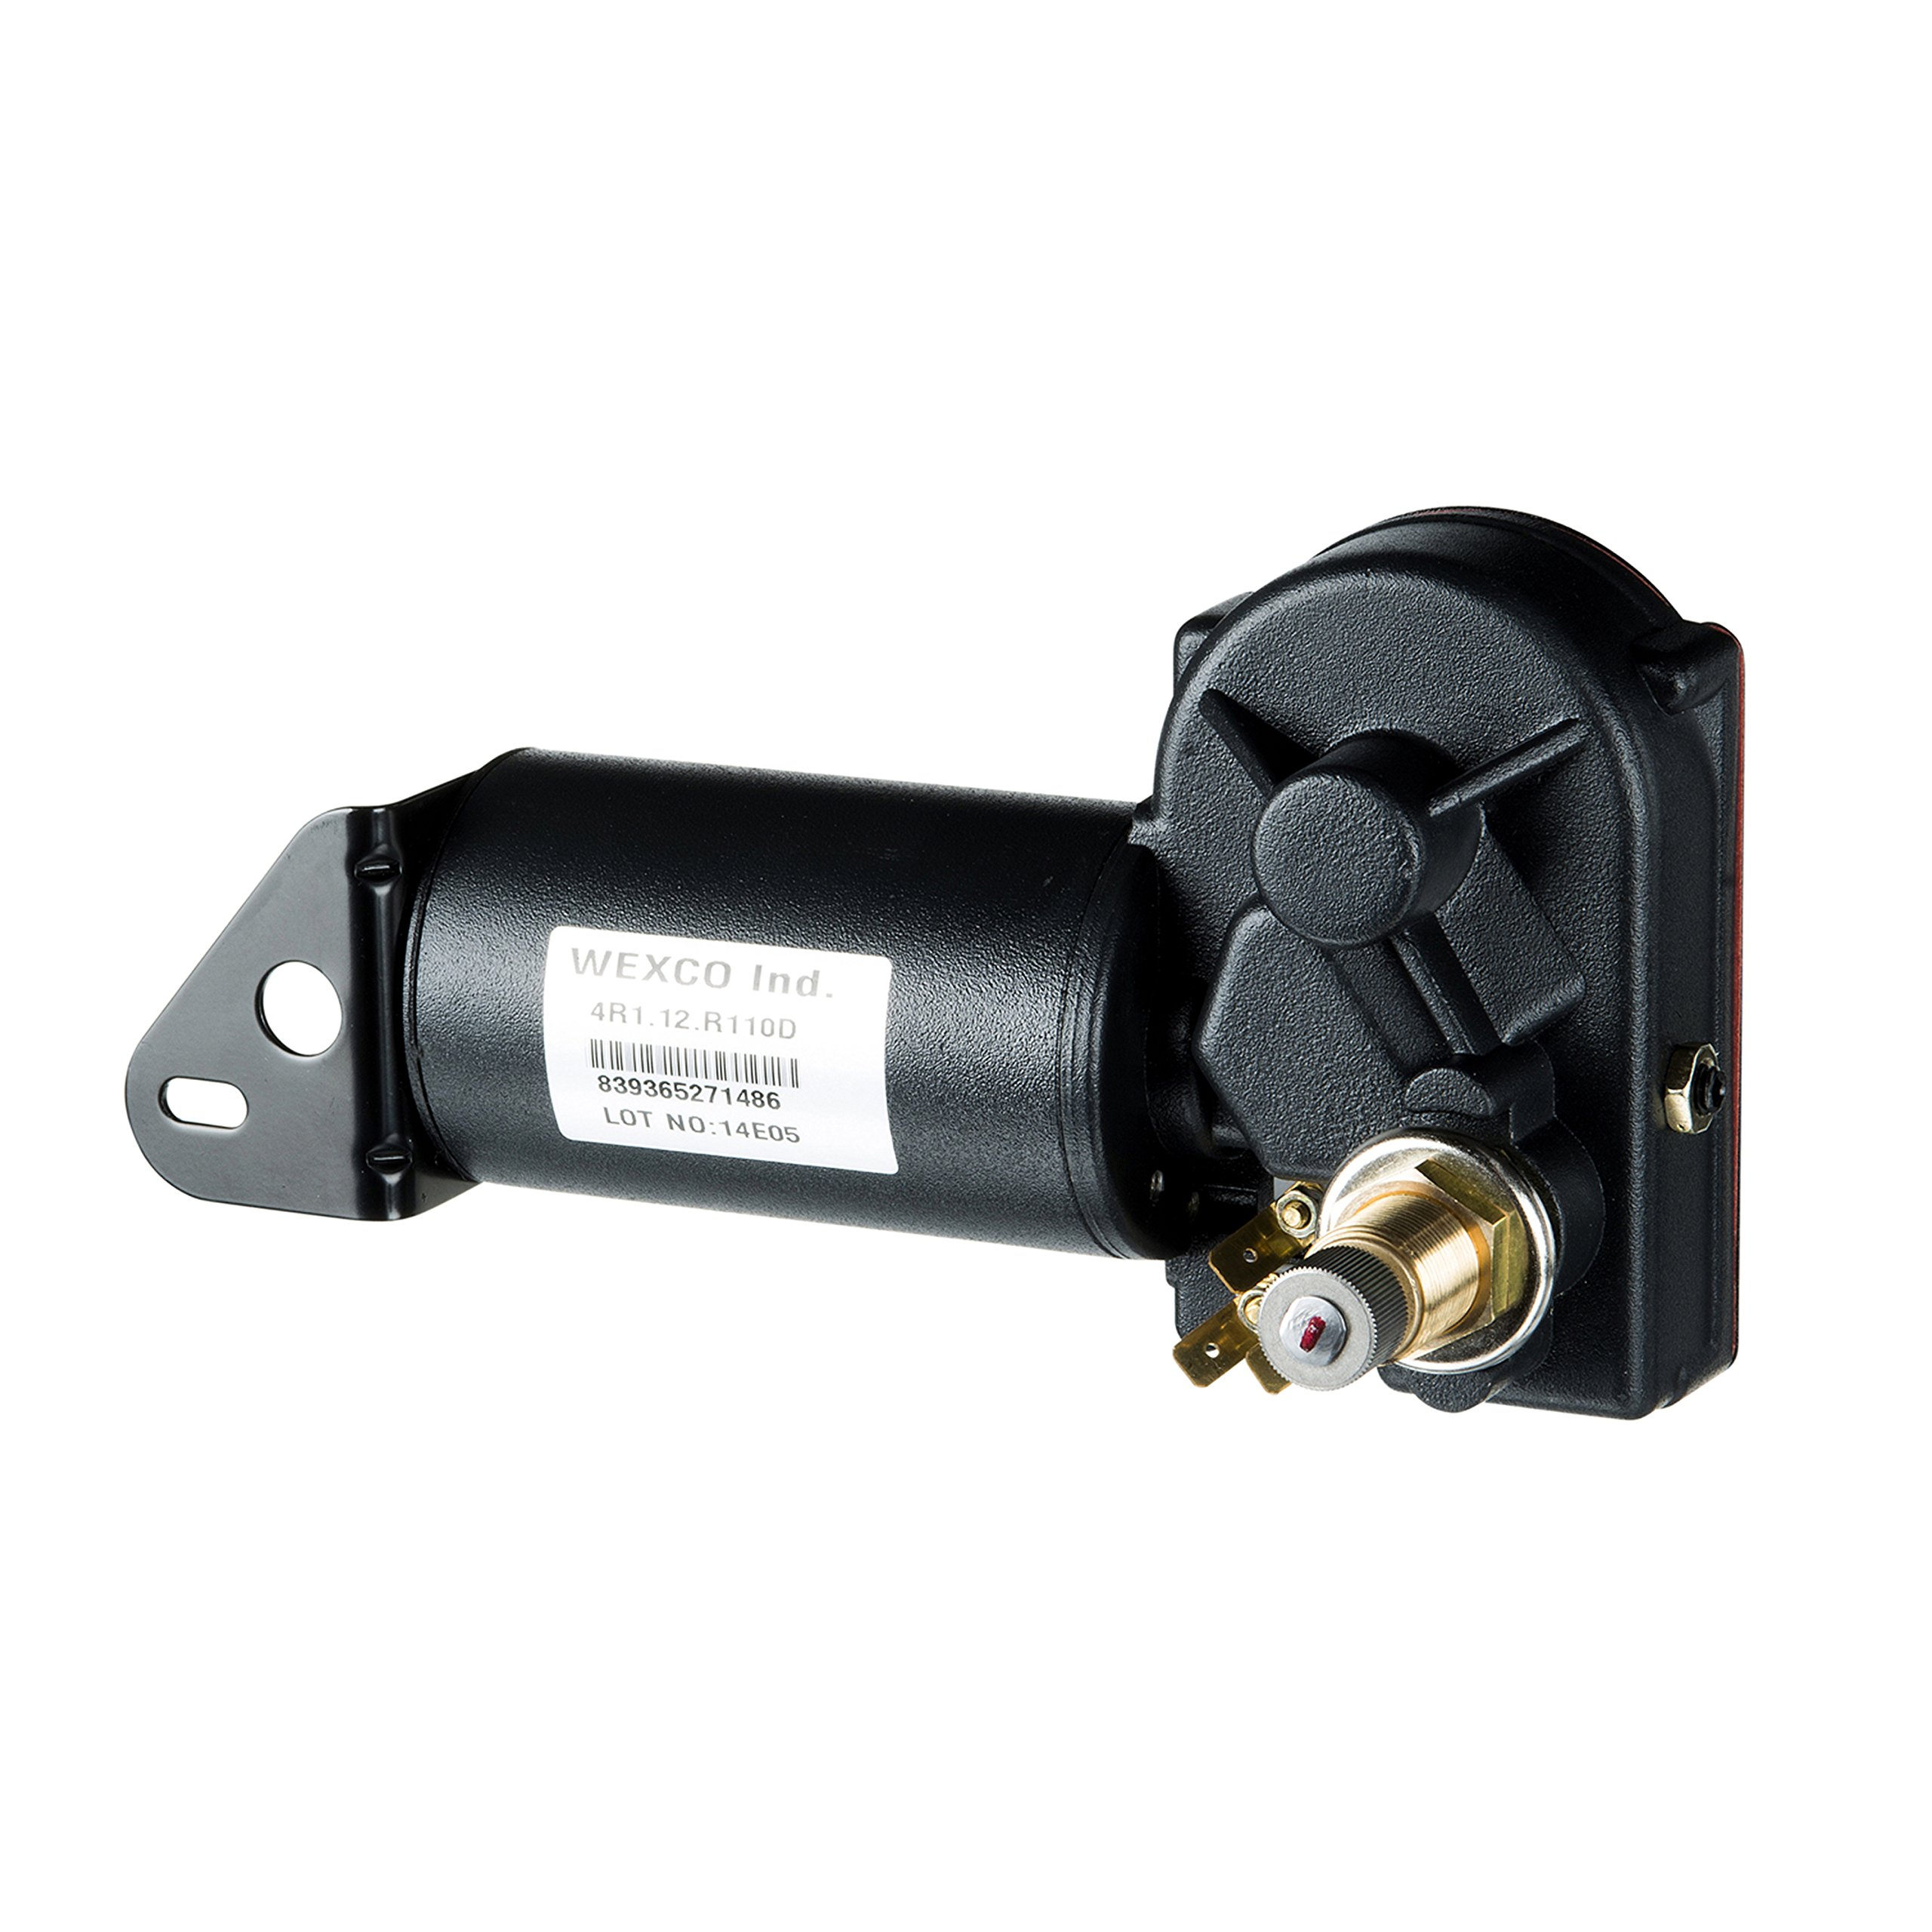 Wexco 4R1.12-19S2.R110D 1.5'' Wiper Motor with 2-Speed Switch, 12V by Wexco